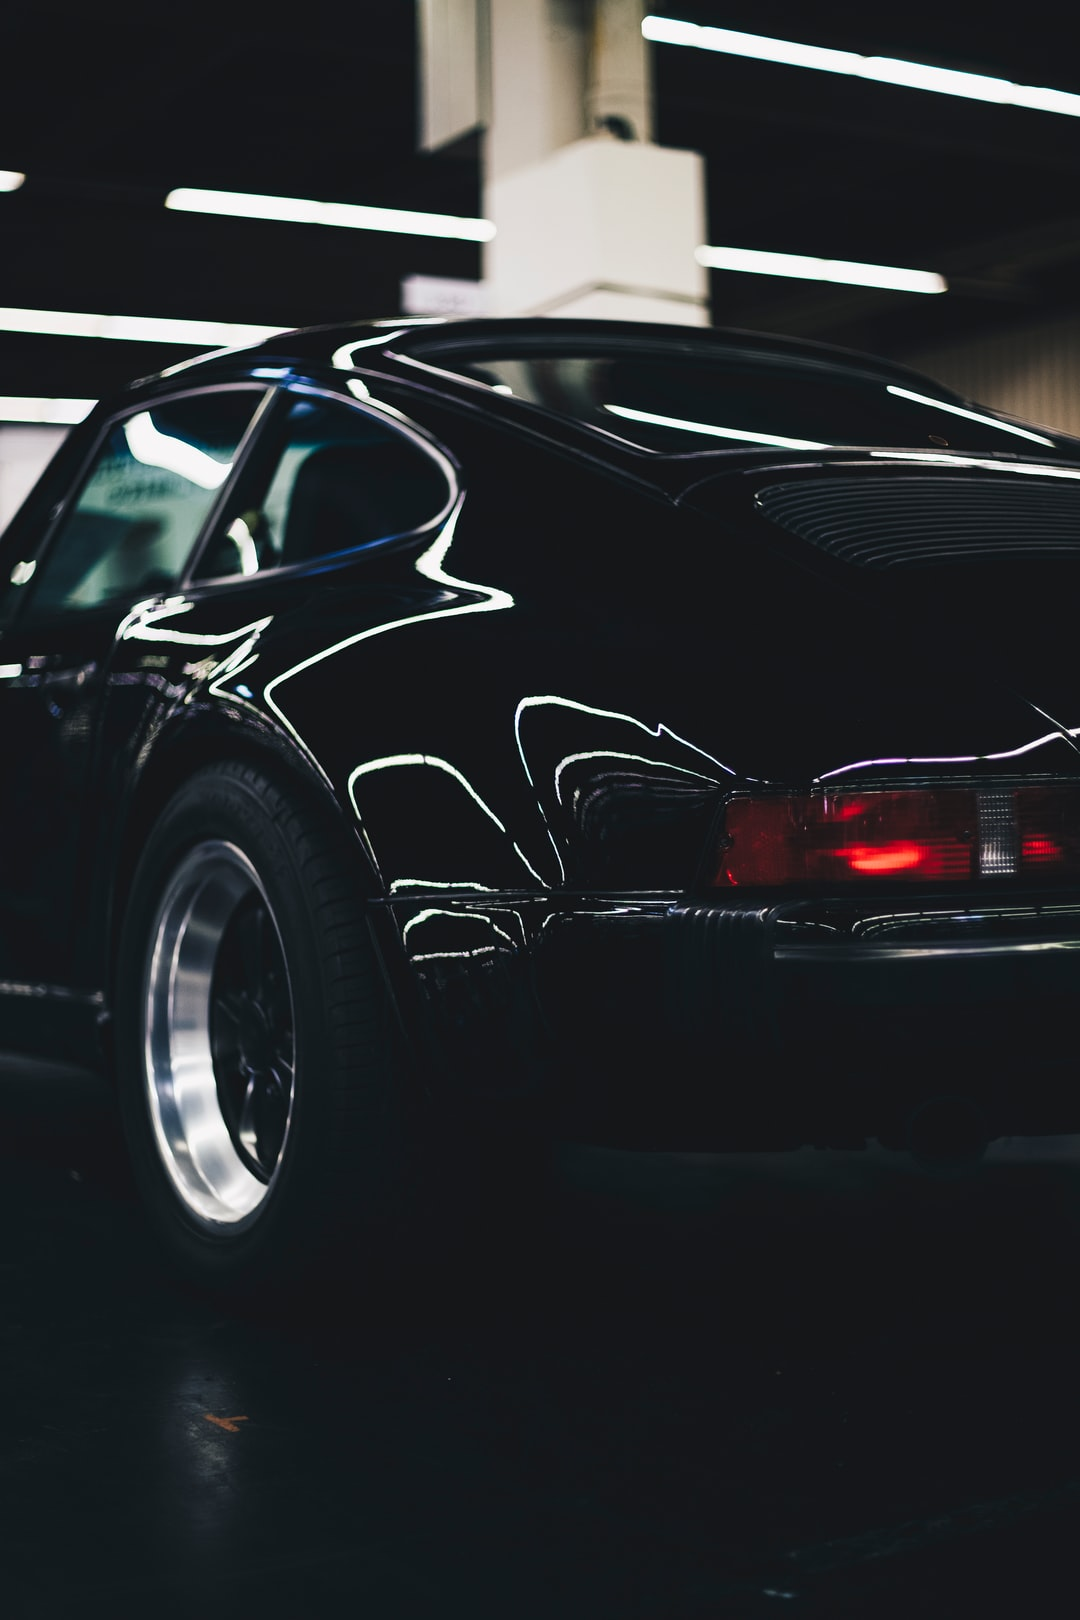 Black Porsche 911 - legendray german vintage classic sports car. Made with Canon 5d Mark III and loved analog lens, Leica Summilux-R 1.4 / 50mm (Year: 1983)